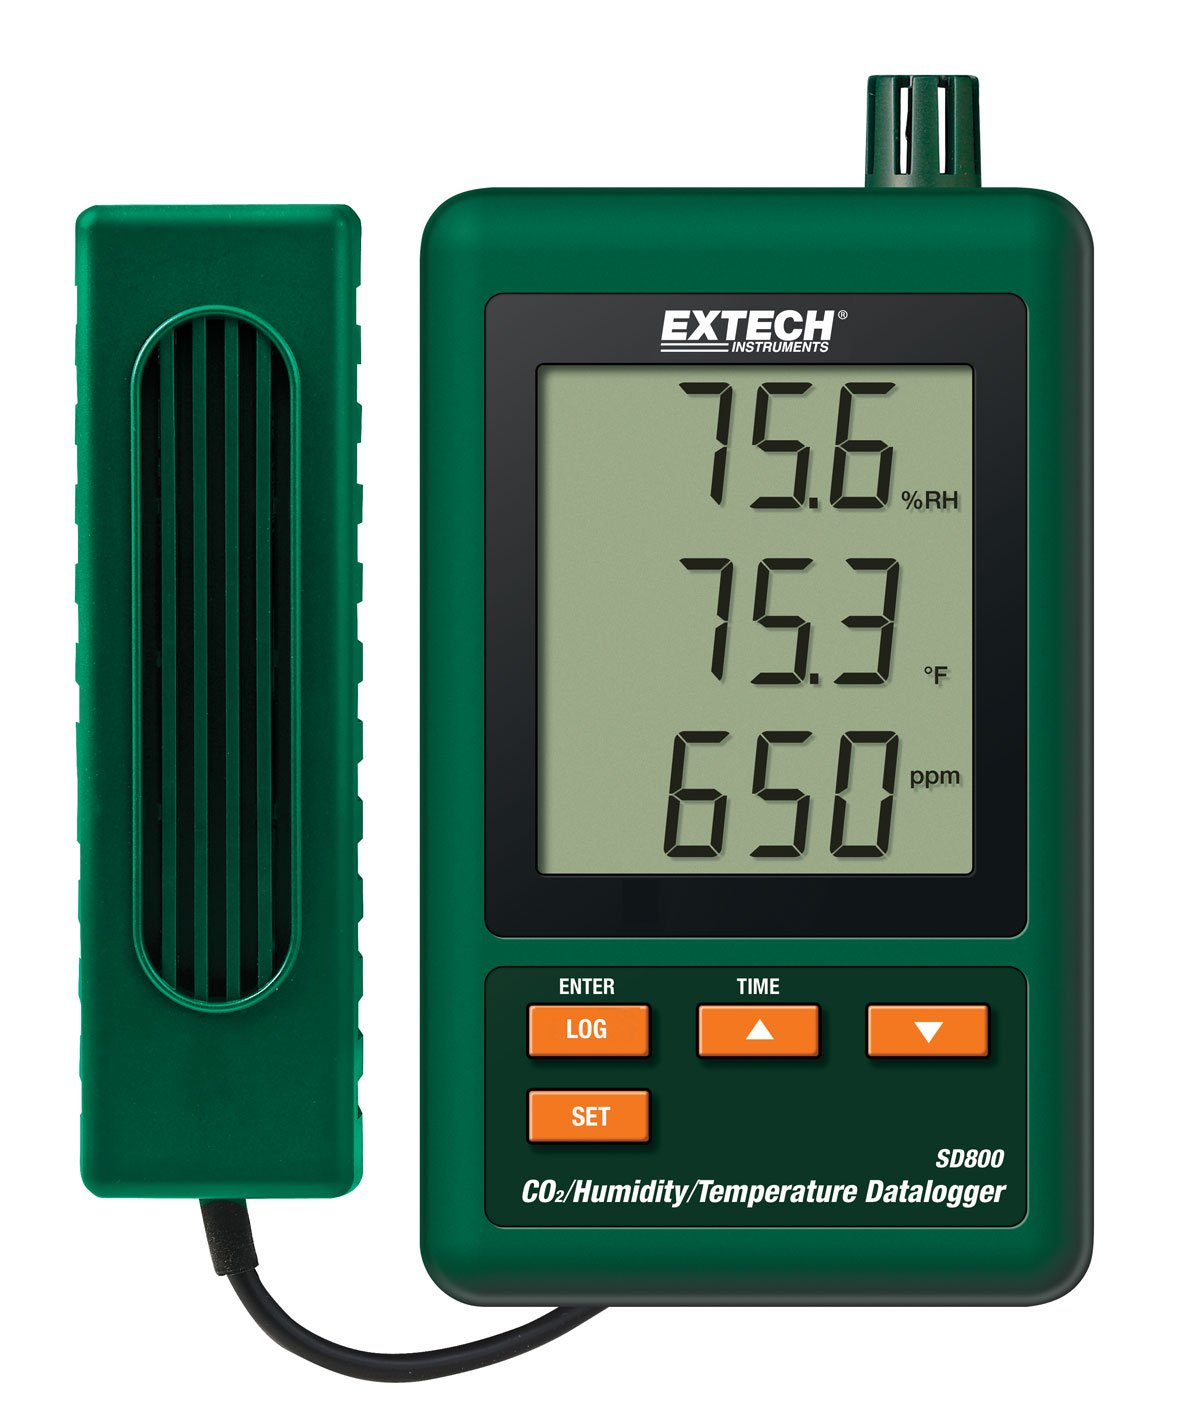 Extech SD800 CO2 Humidity and Temperature Datalogger